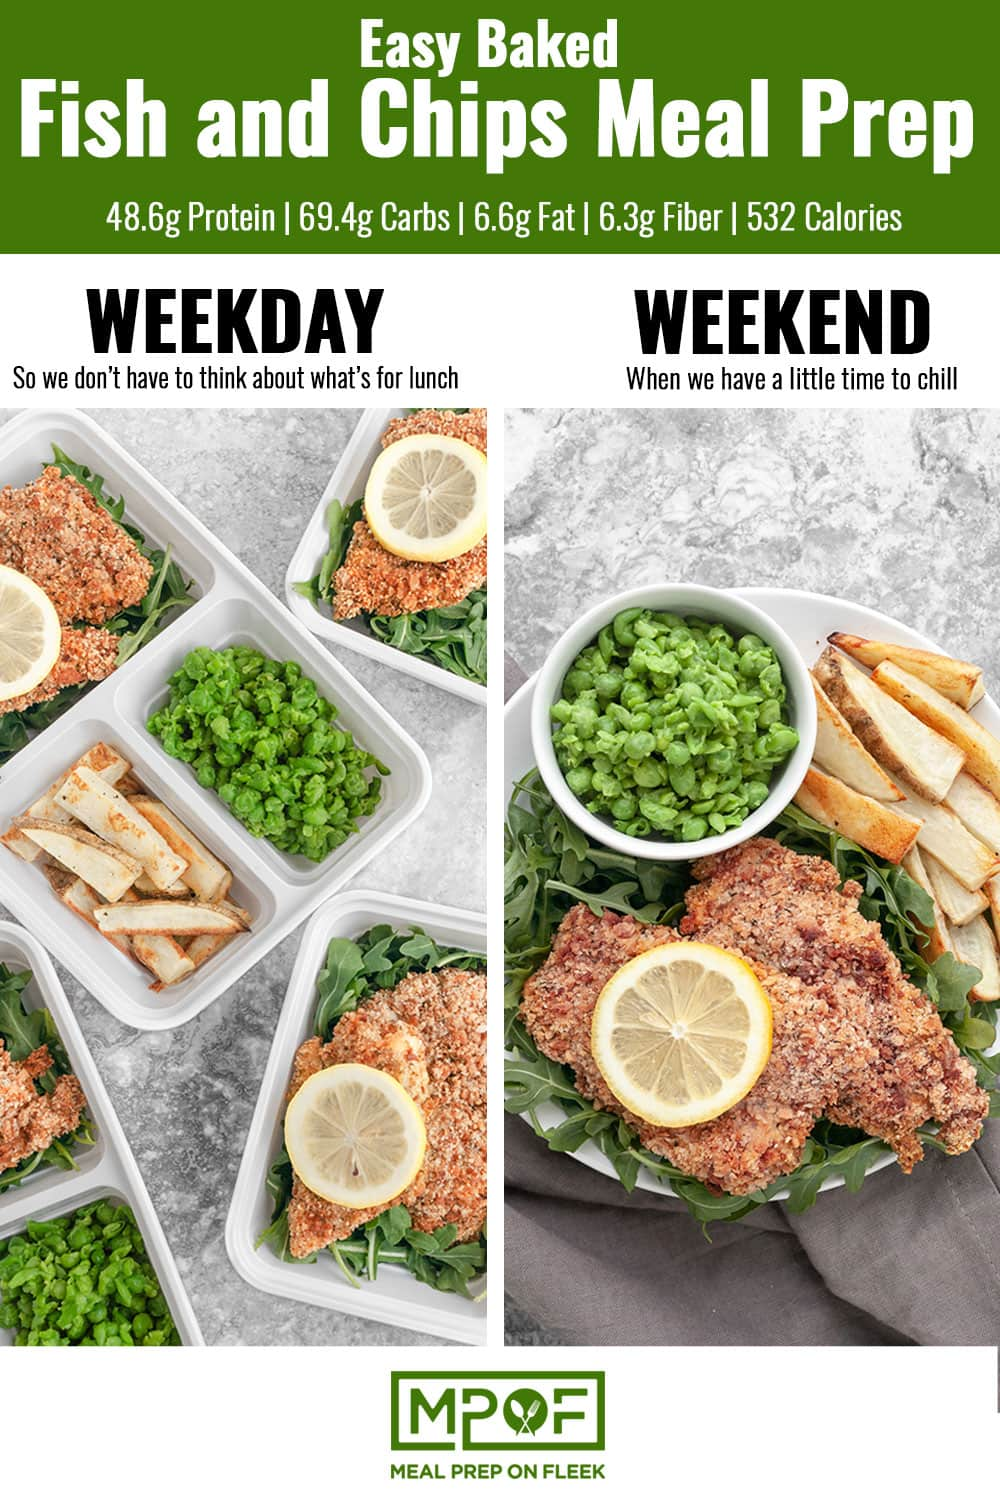 Baked-Fish-and-Chips-Meal-Prep